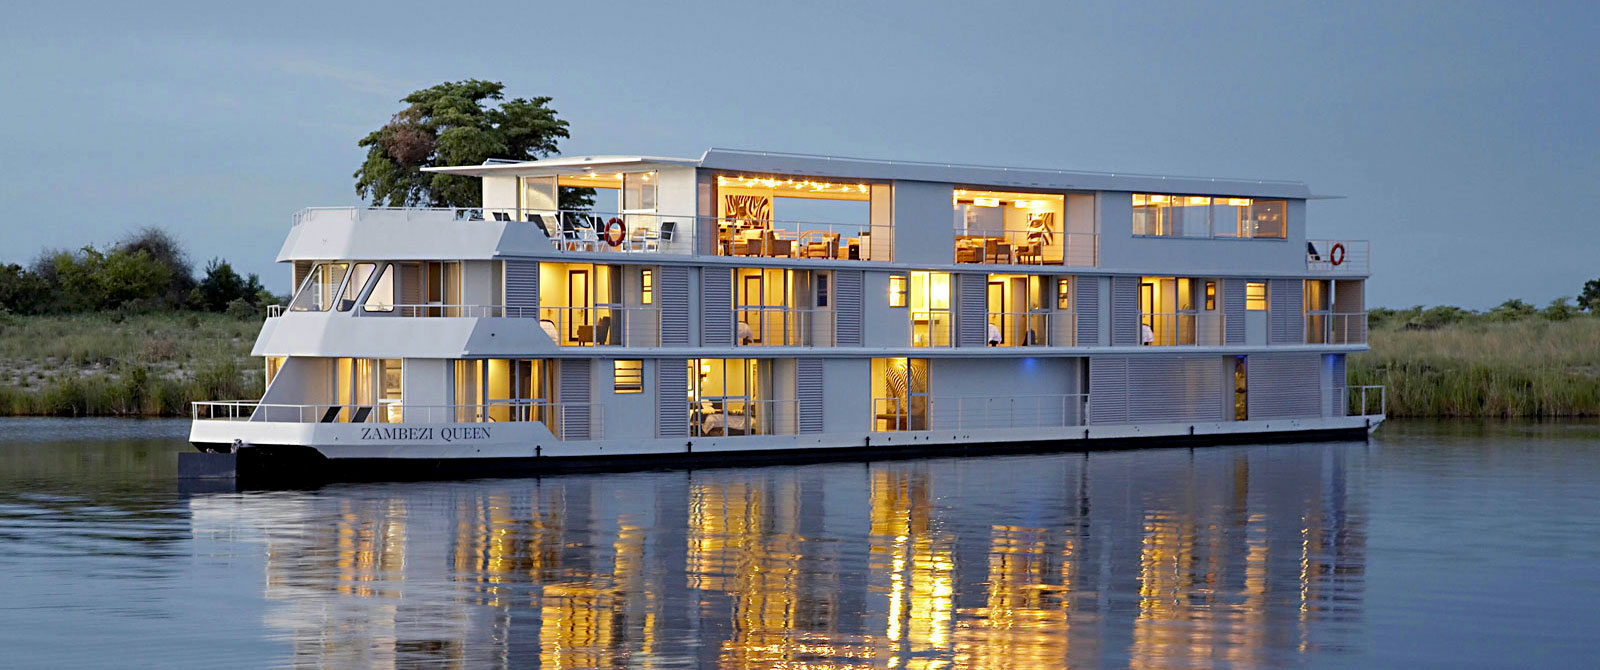 Exterior of the Zambezi Queen River Cruise Vessel